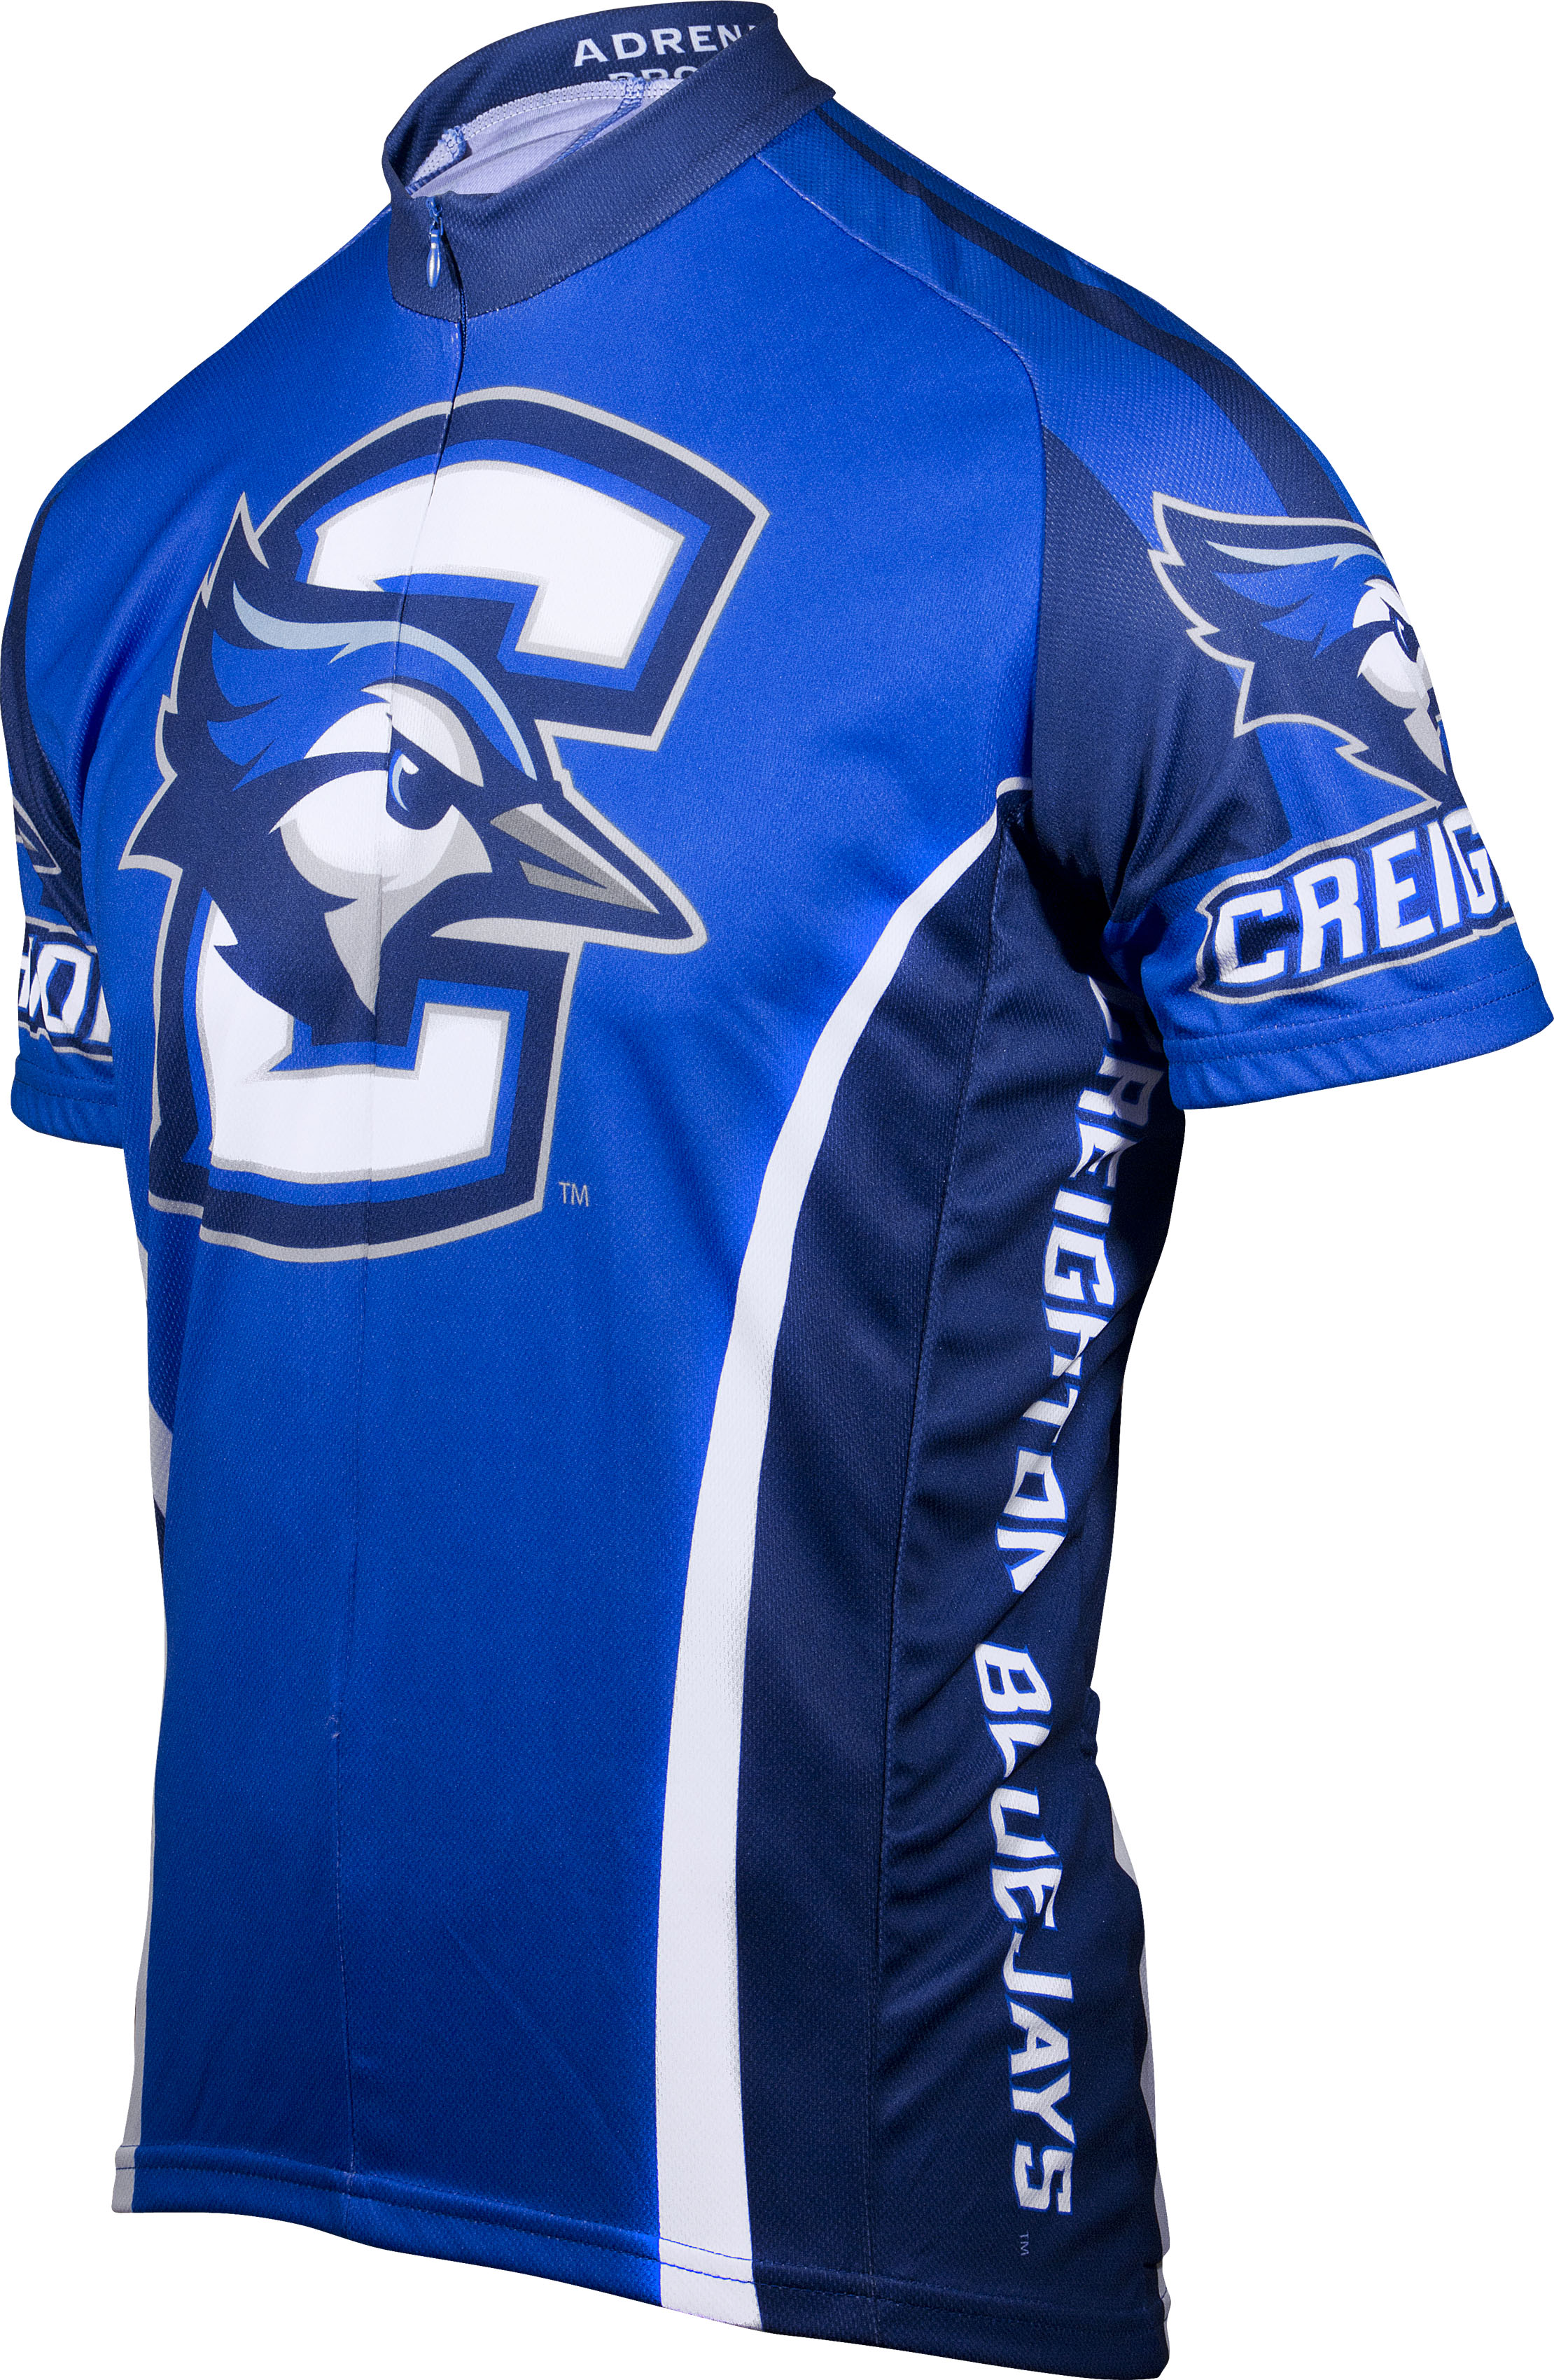 Creighton University Cycling Jersey 2XL